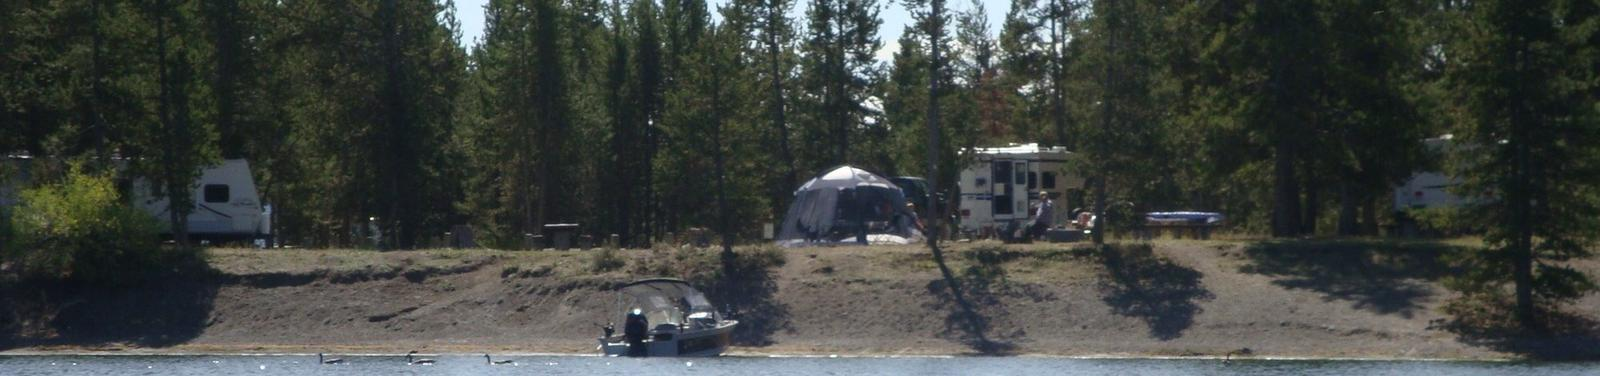 View of Lonesomehurst Campground from Hebgen Lake, boat, RV, tent  & pine treesLonesomehurst Campground